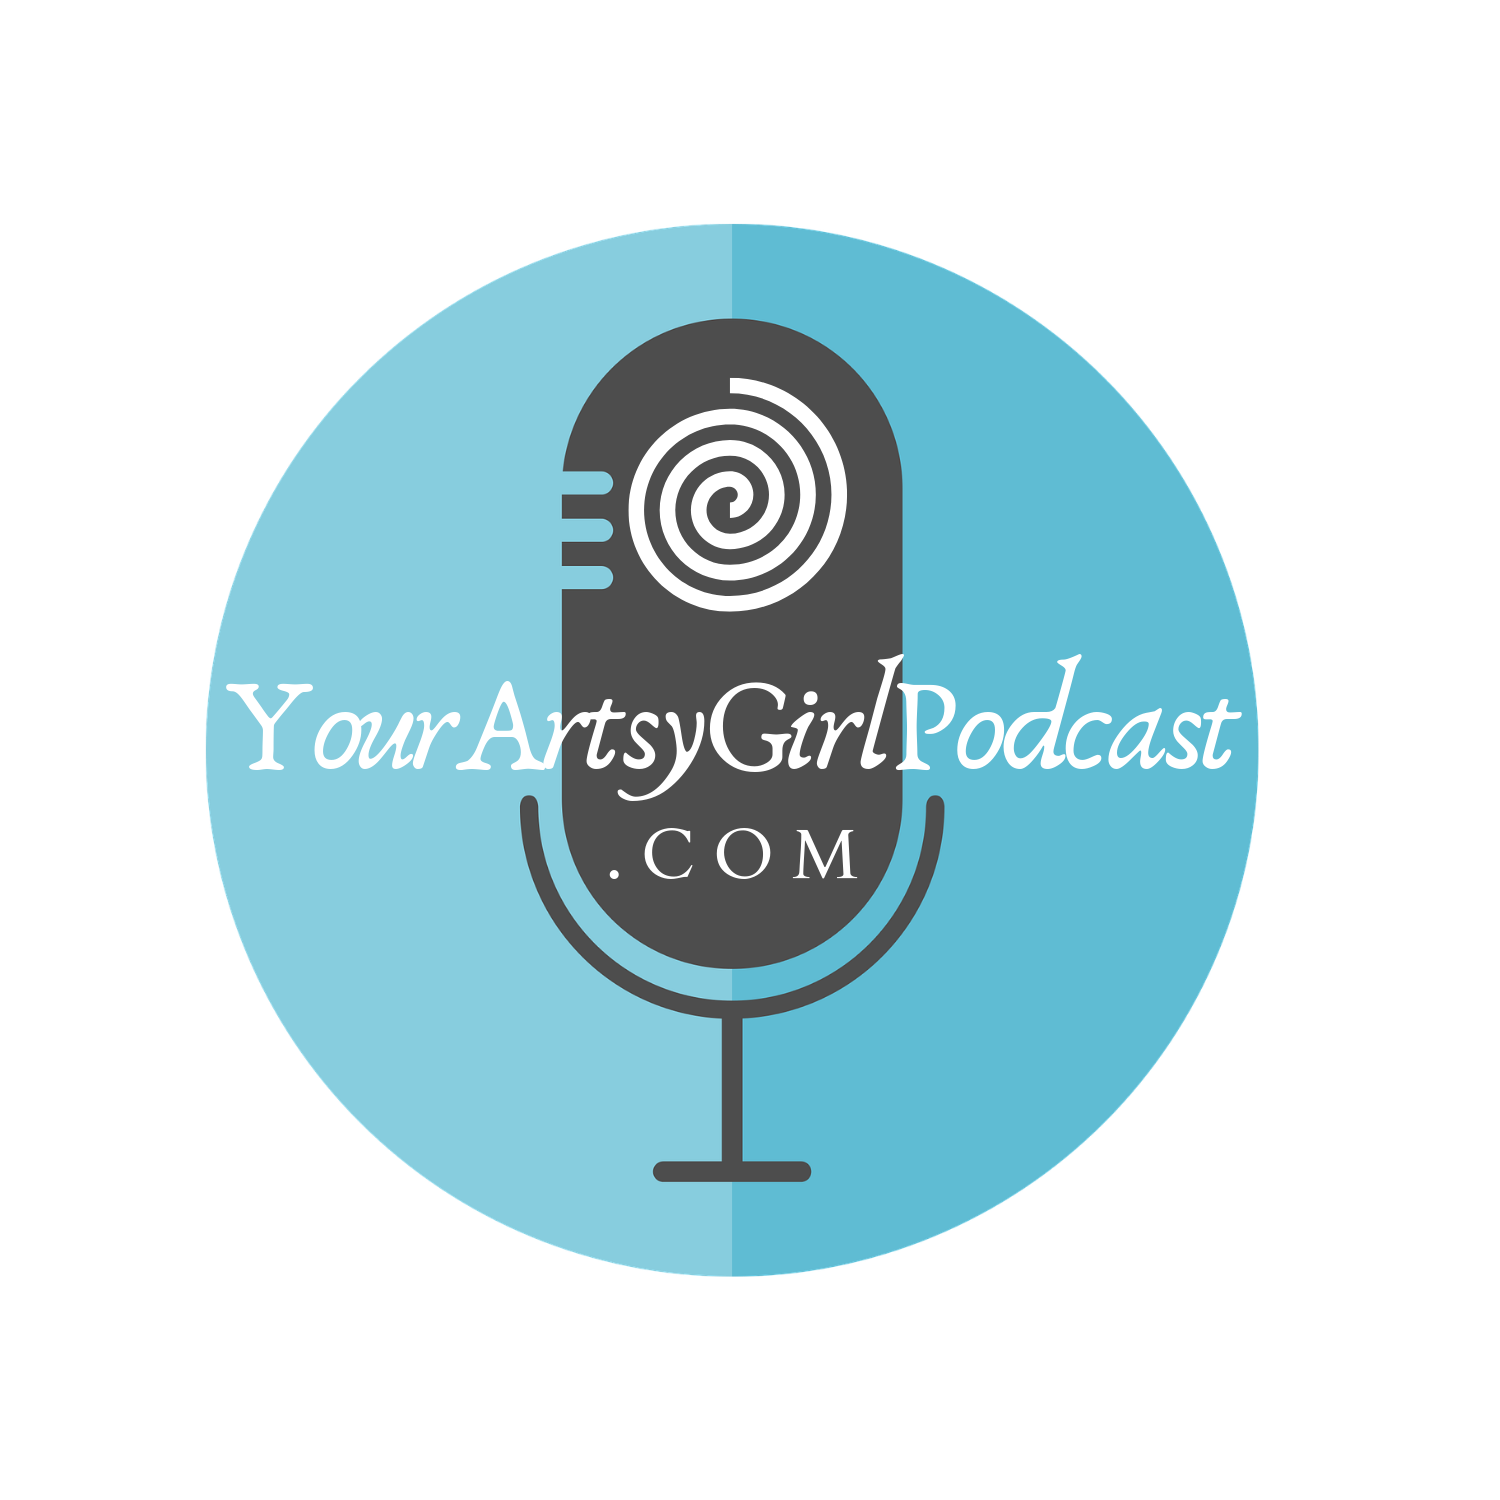 YourArtsyGirlPodcast show art